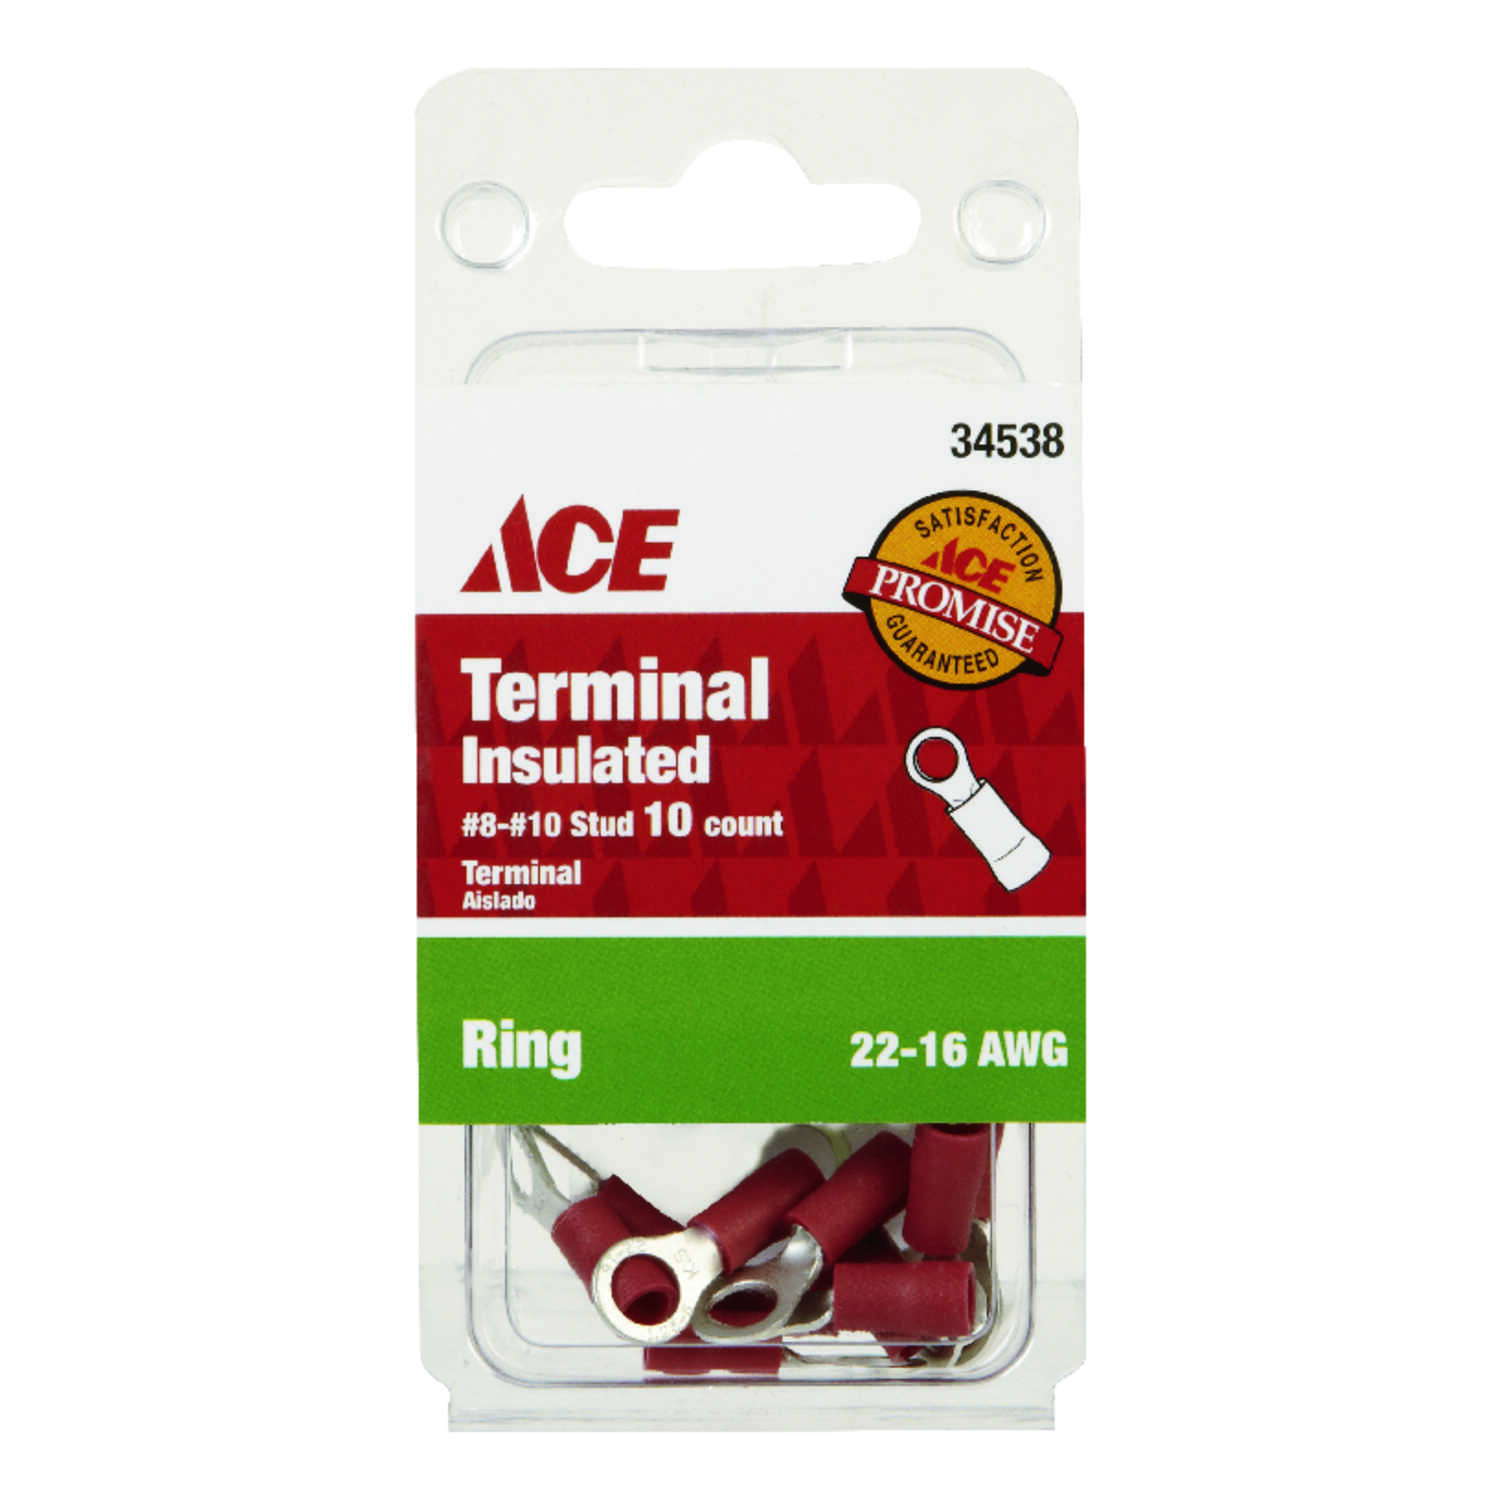 Ace  Insulated Wire  Ring Terminal  22-16 AWG 10